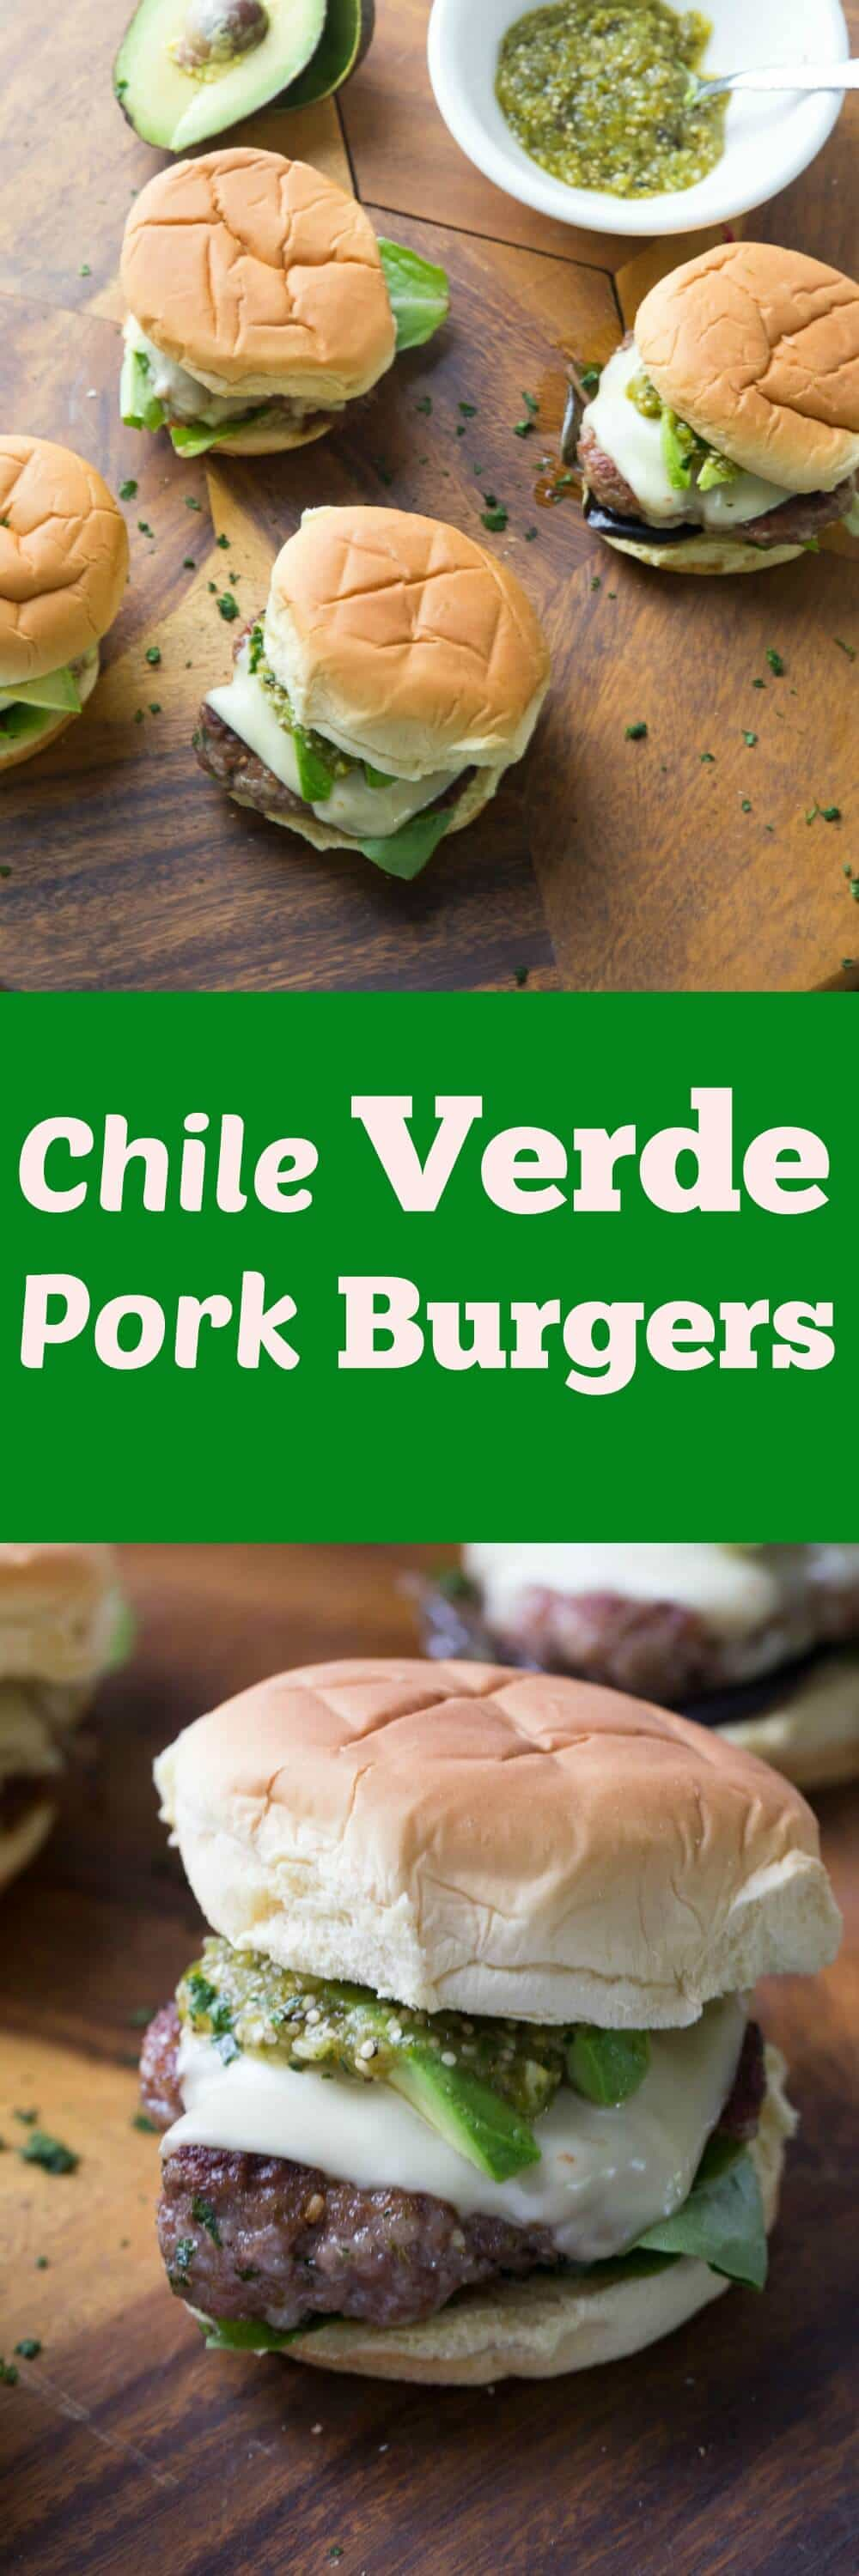 These pork burgers will make you forget the beef! These well seasoned burgers are topped with a simple Chile Verde and cool avocados. Tex-Mex meets BBQ! lemonsforlulu.com